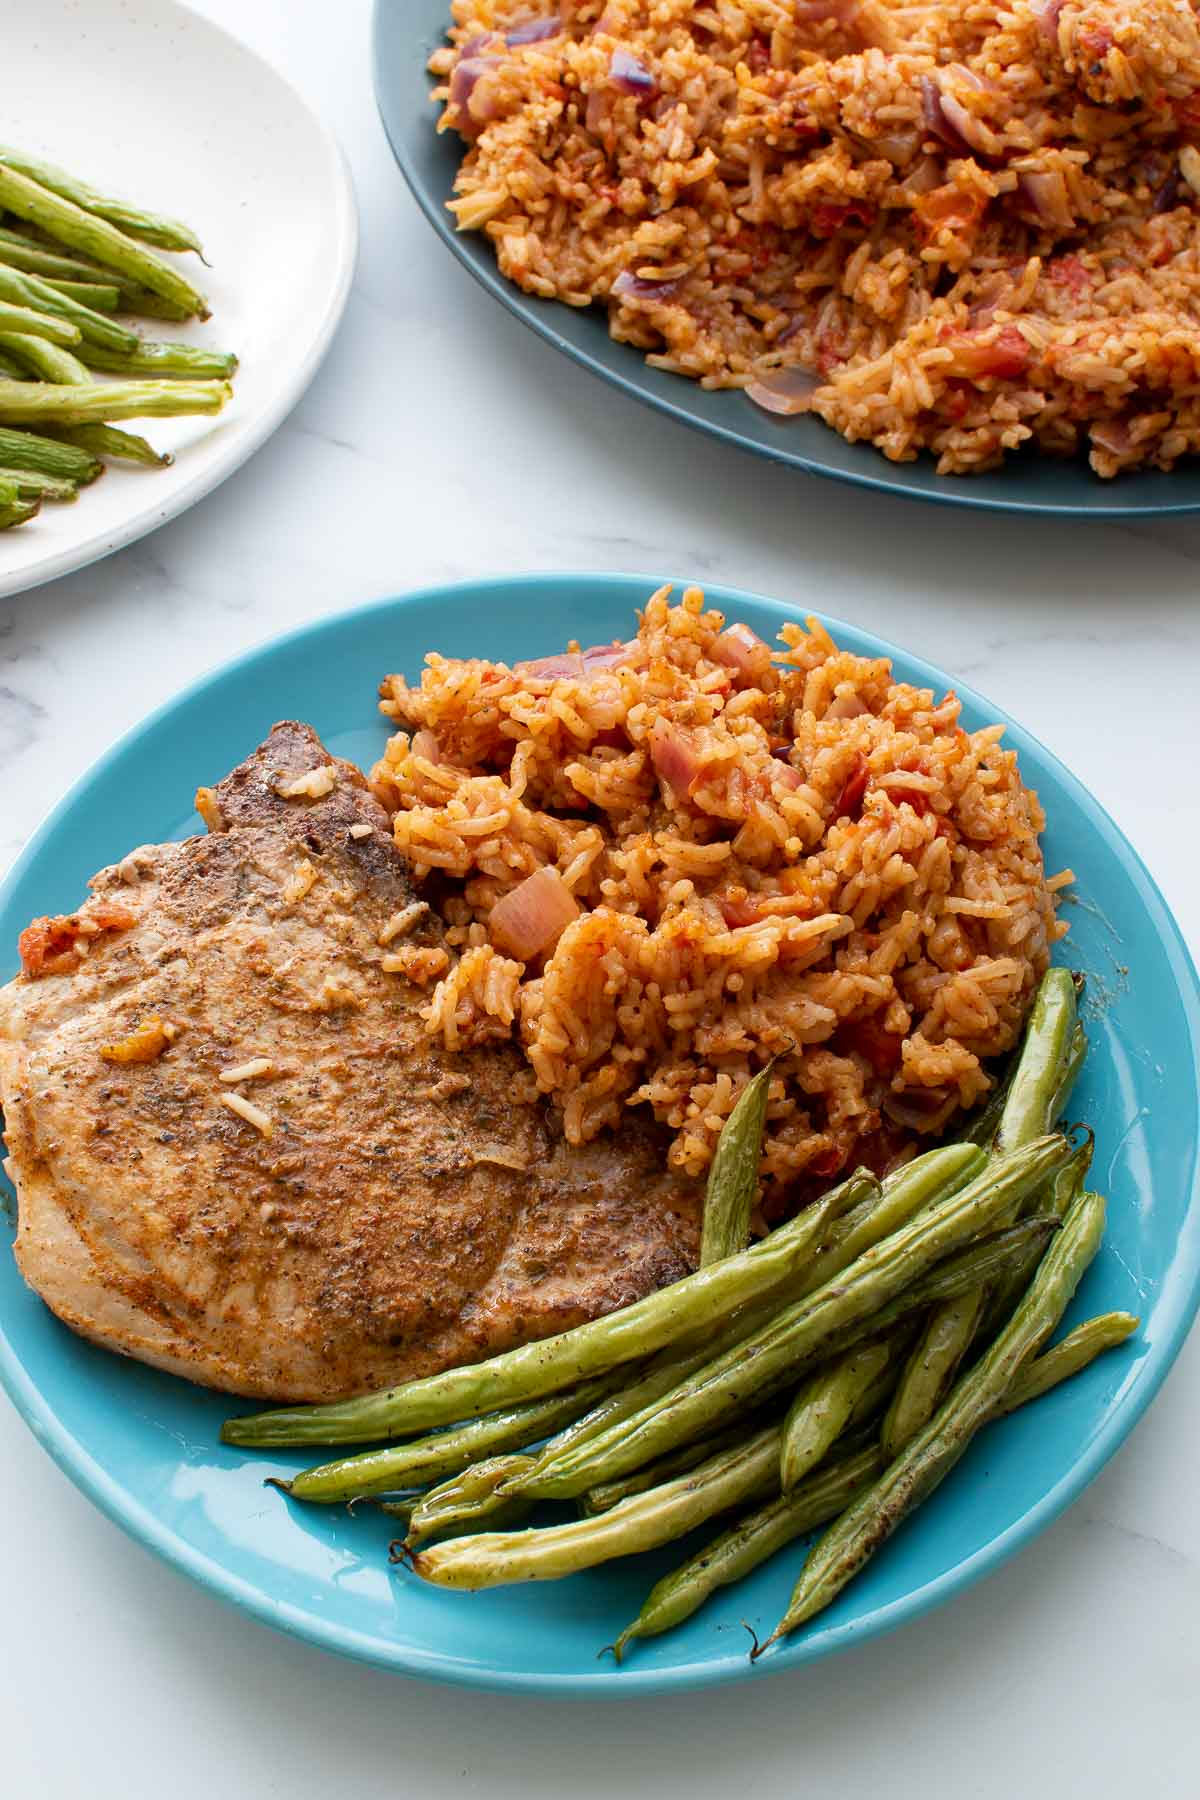 A plate with pork chop, rice and roasted green beans.